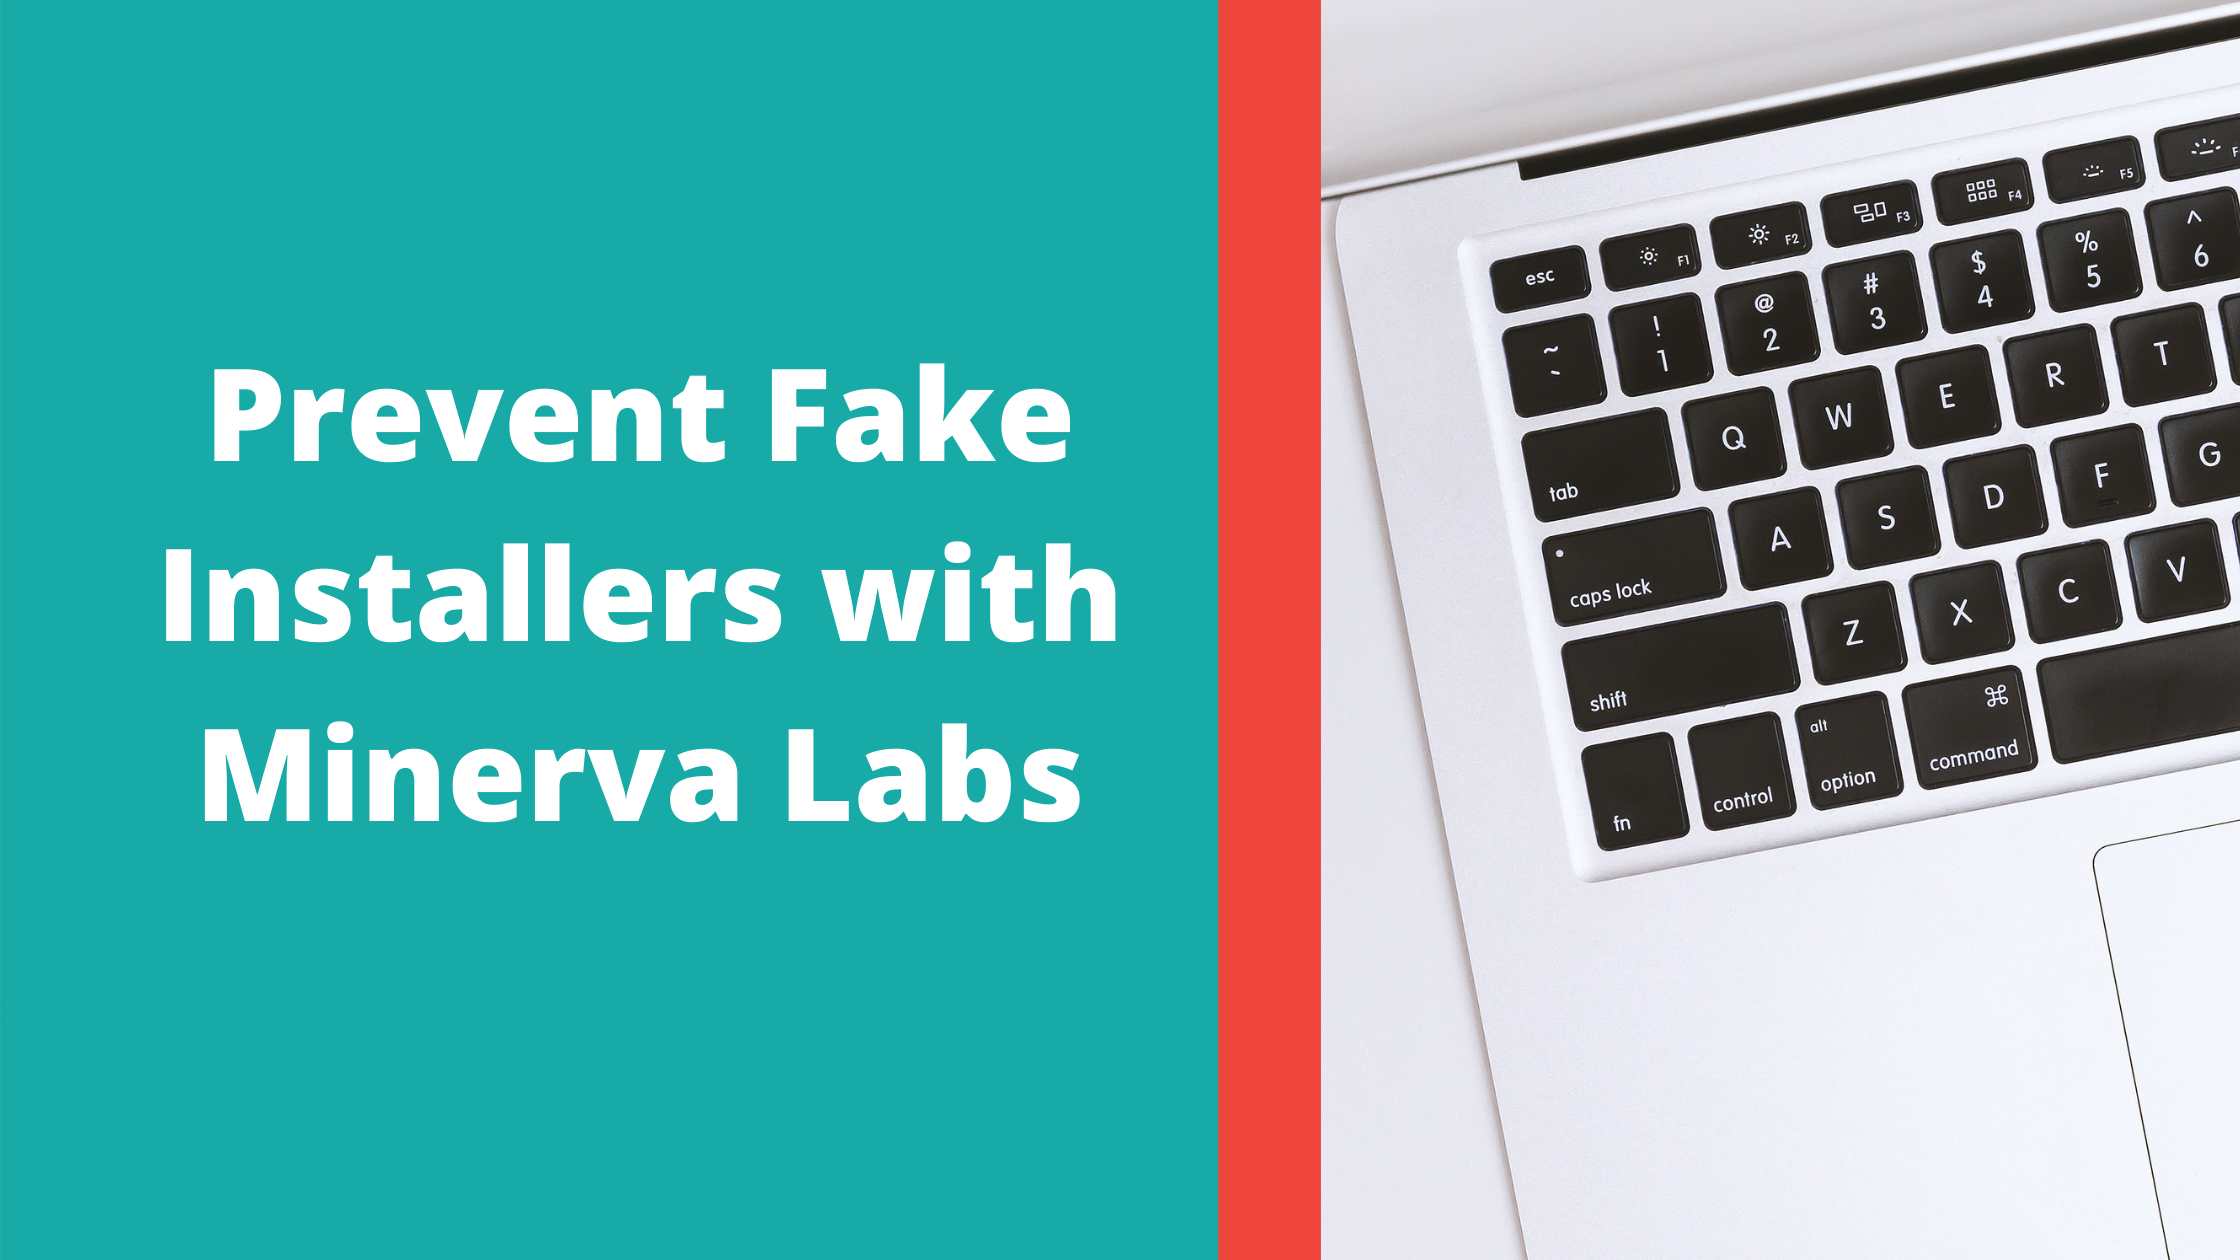 Preventing Fake Software Installers with Minerva Labs